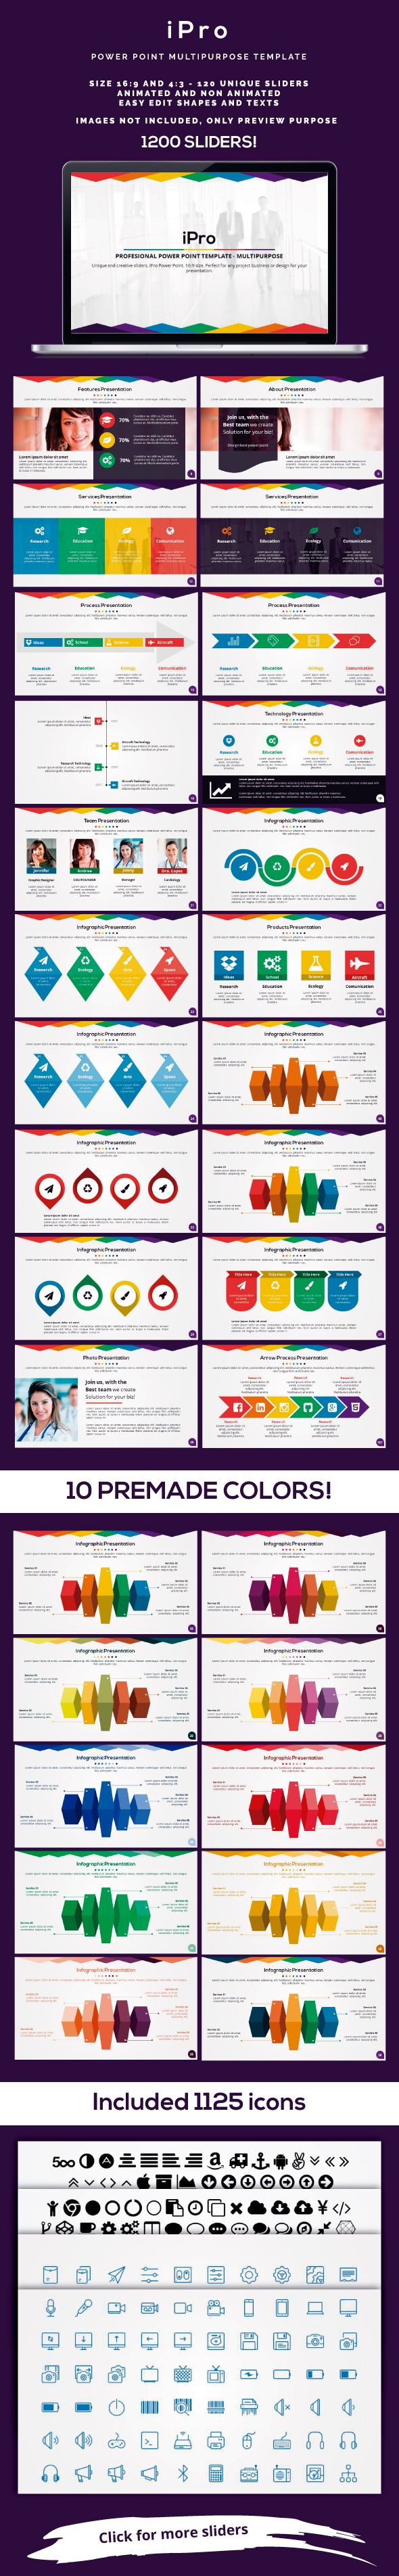 iPro PowerPoint Presentation Template. Download here: http://graphicriver.net/item/ipro-power-point/15483078?ref=ksioks